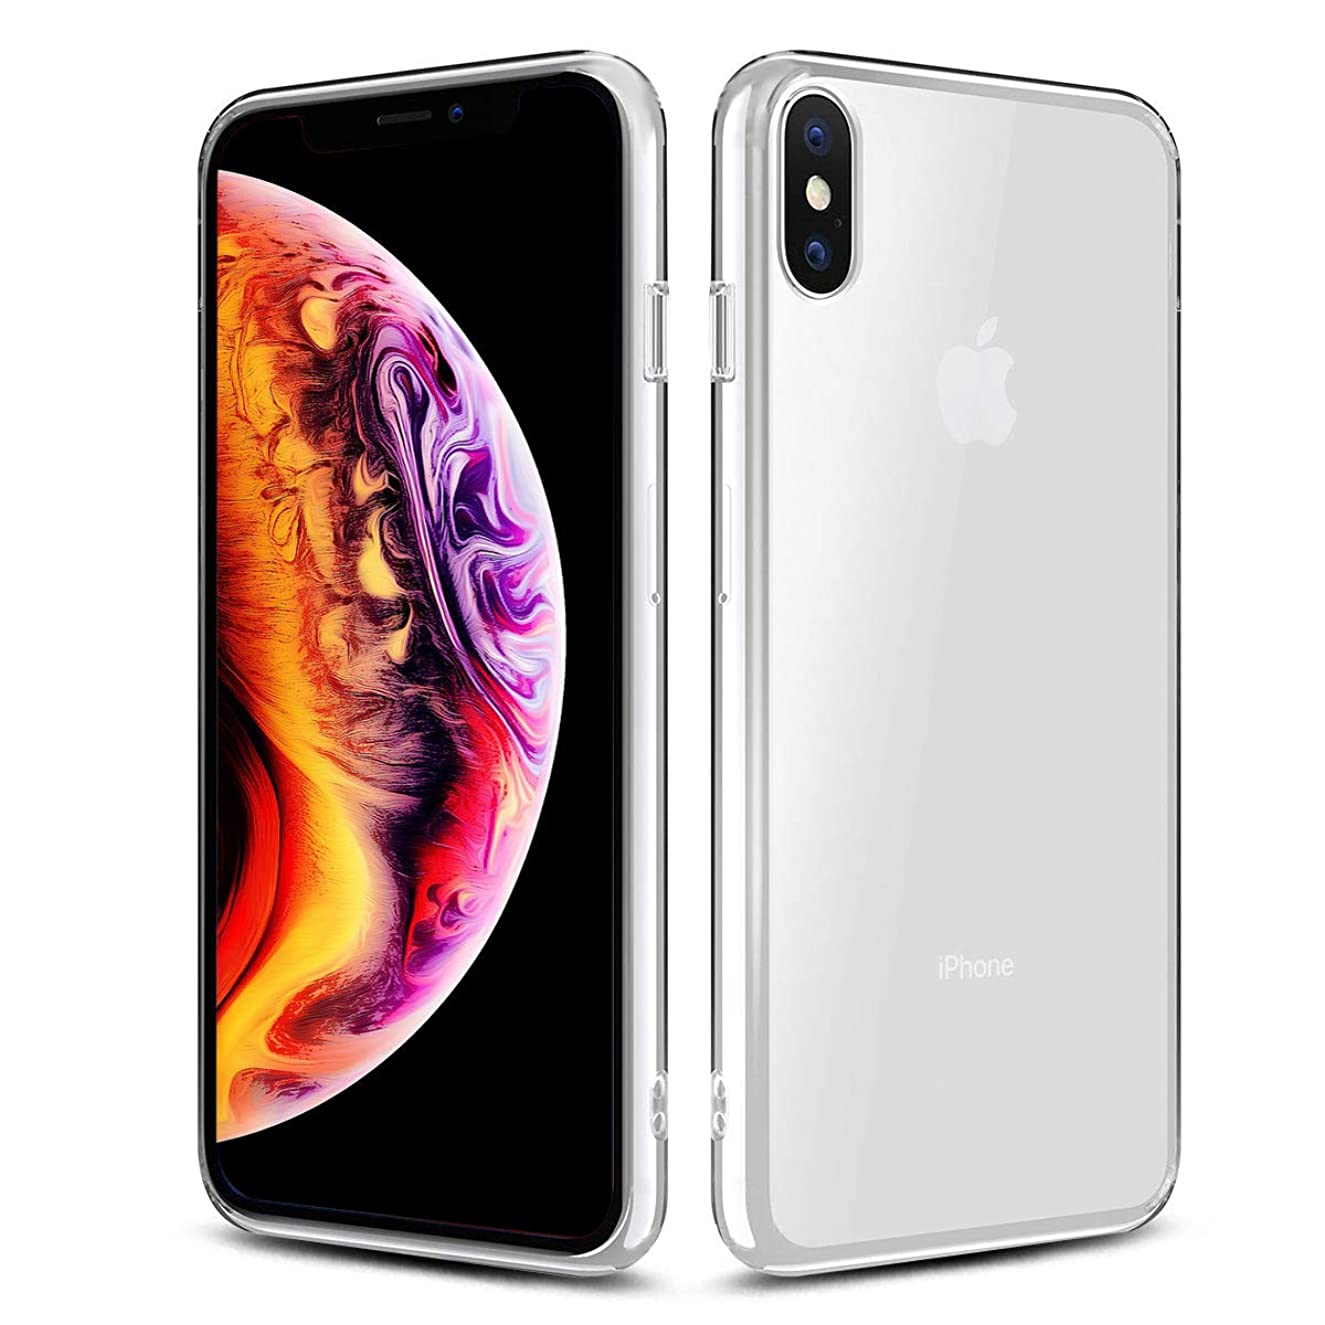 Airror Phone Case Compatible with iPhone XS / iPhone X Cases Clear, Ultra Thin Clear Flexible Soft TPU, [ Support Wireless Charging ] Non-Slip, Protect Cover Clear Cases Slim Fit 305